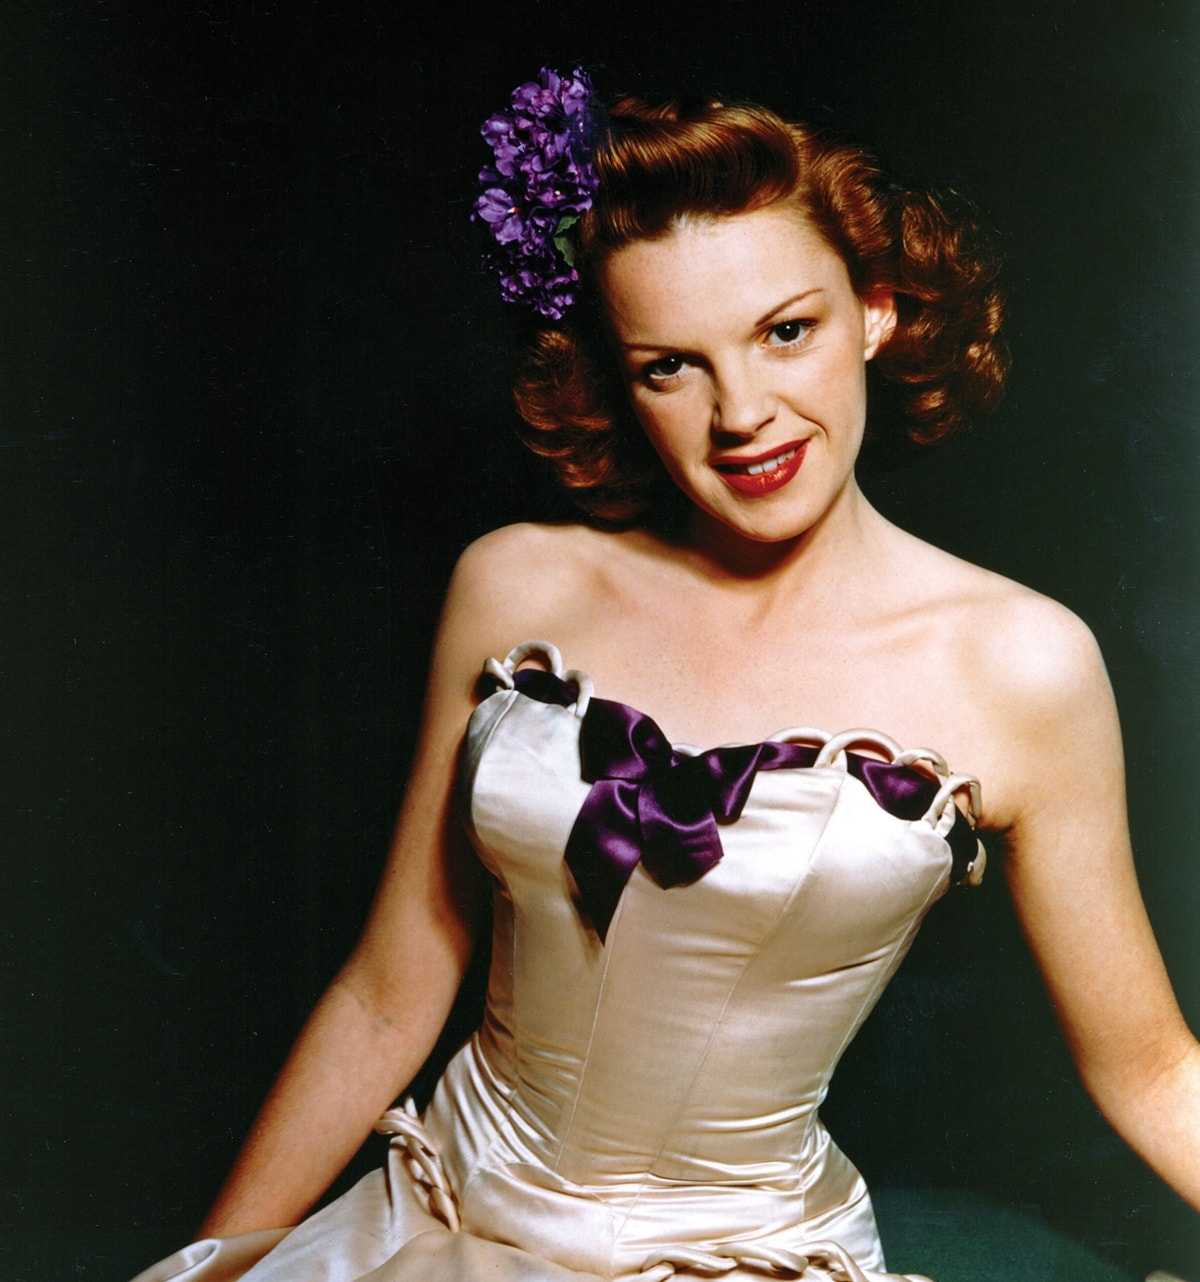 The iconic platform sandal was designed by Salvatore Ferragamo for American singer and actress Judy Garland